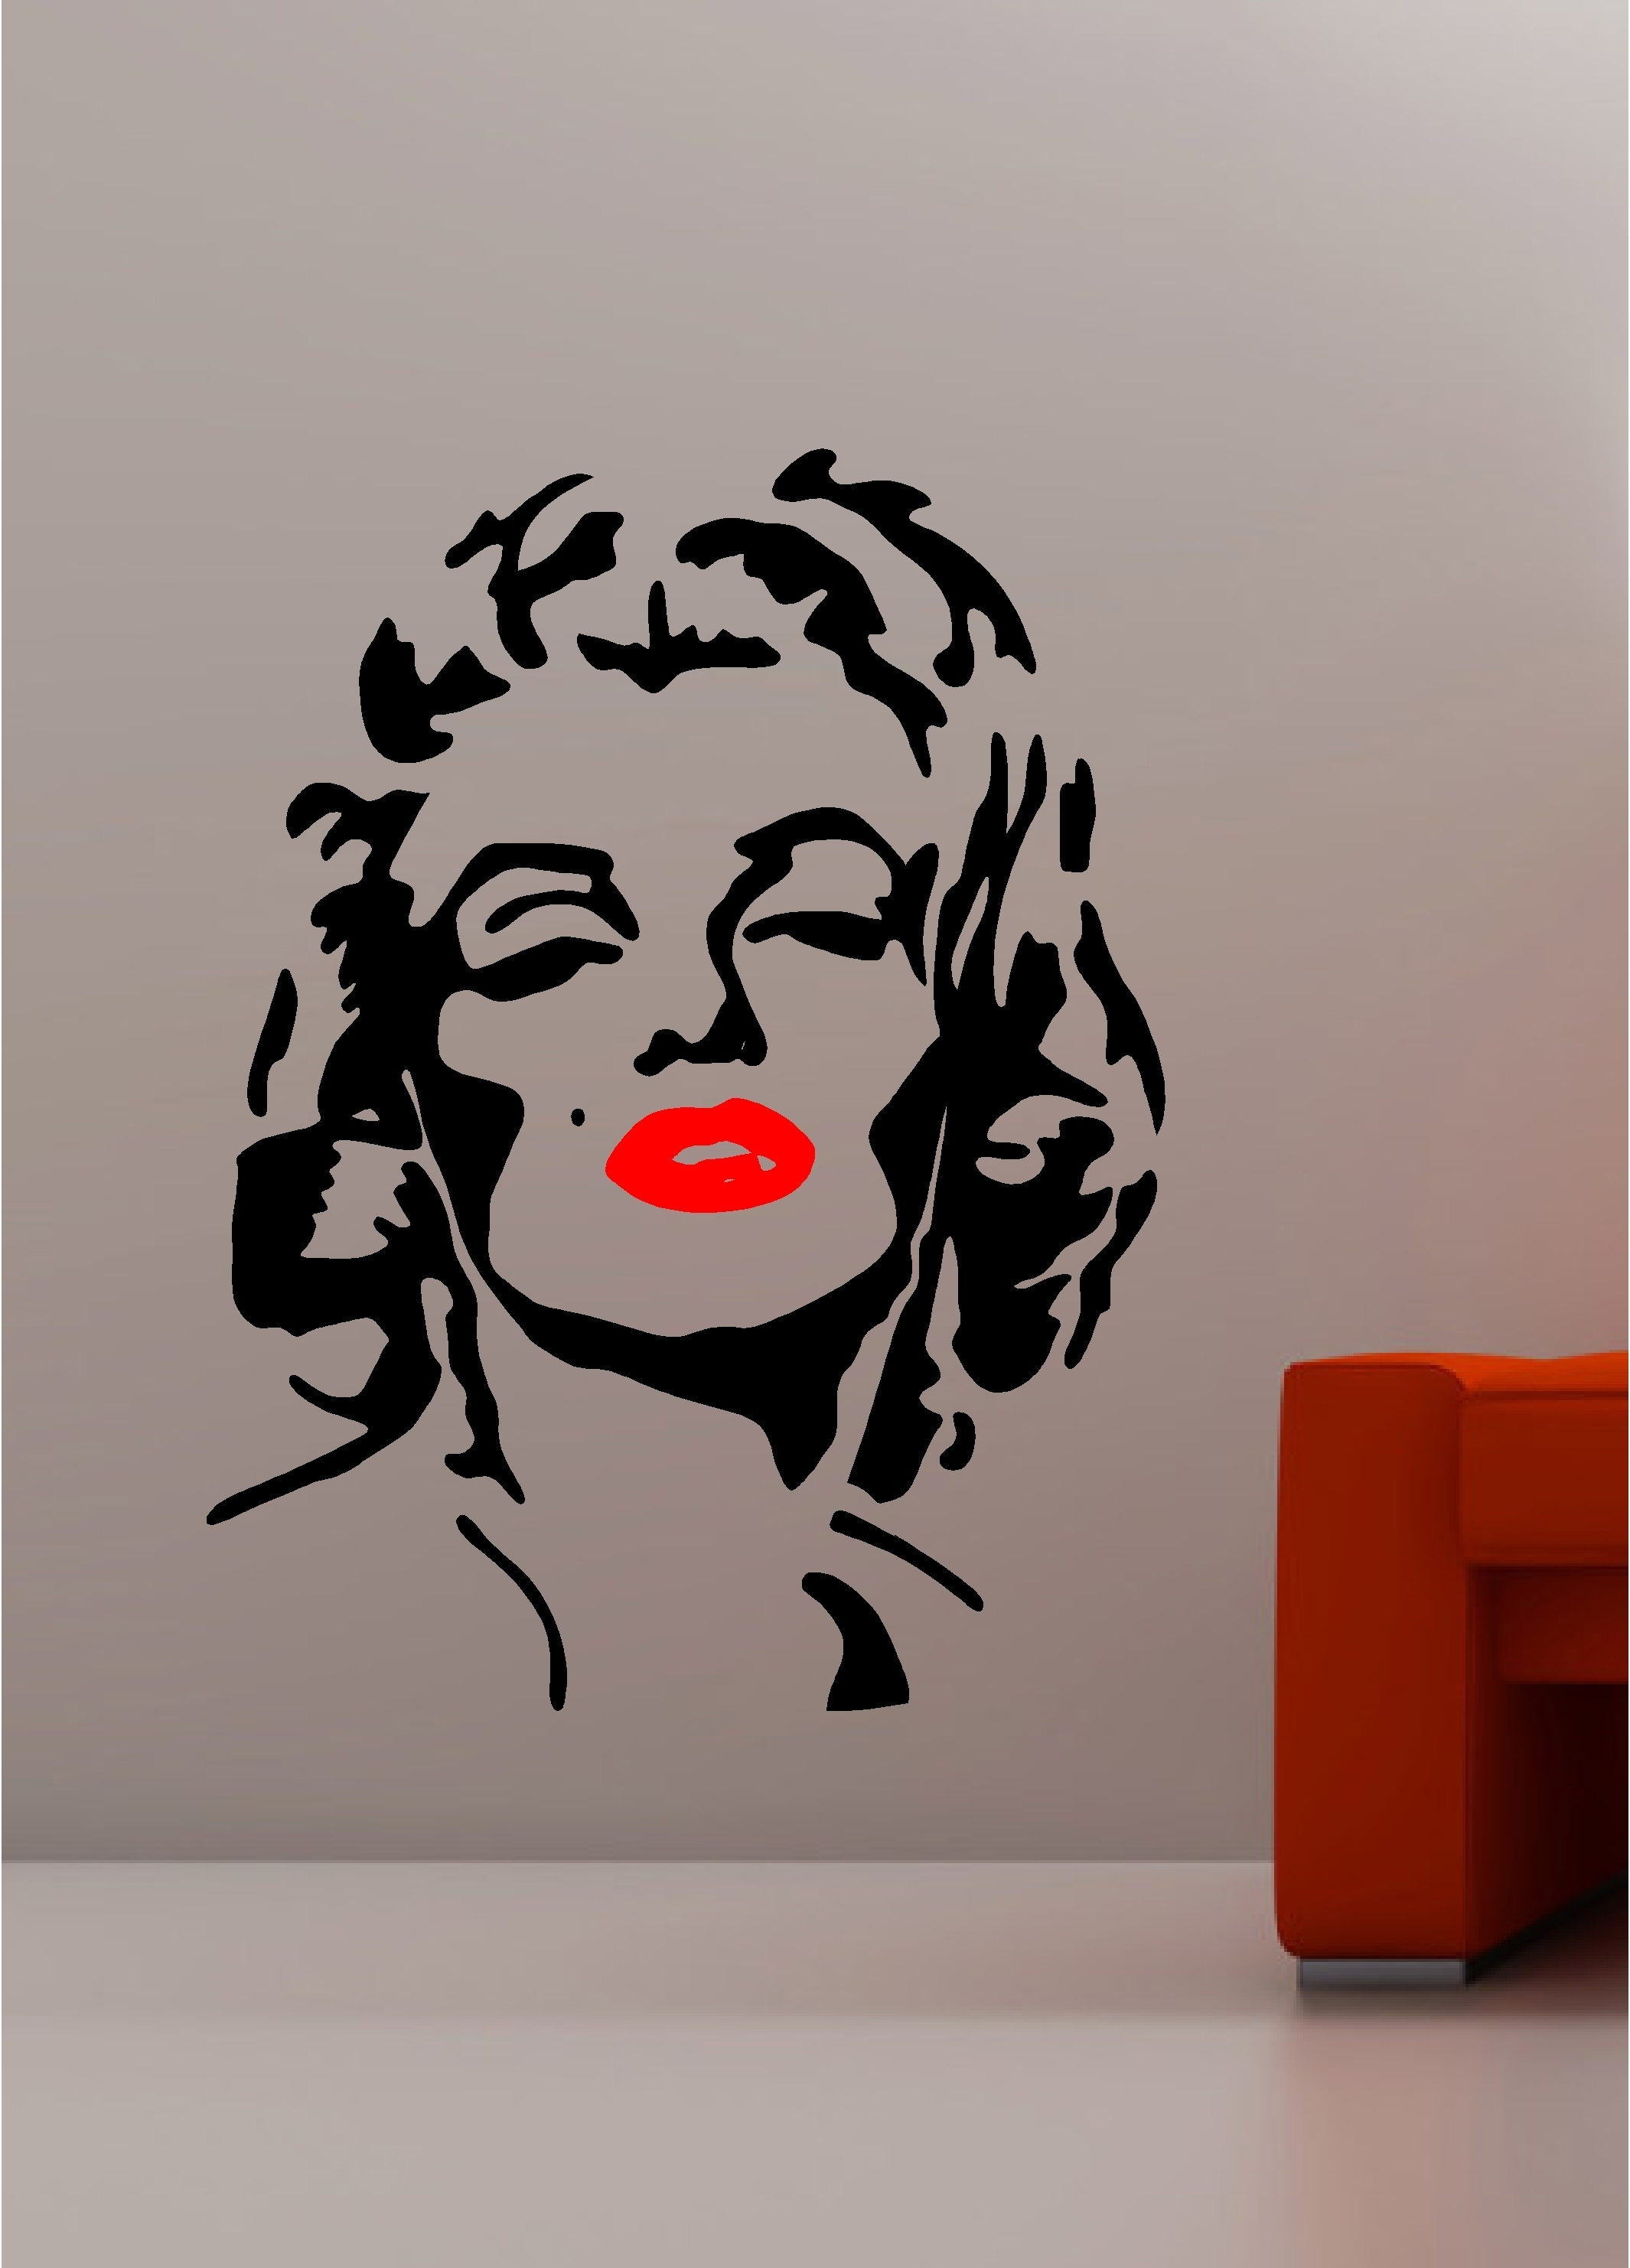 Best And Newest Marilyn Monroe Wall Art Quotes Intended For Wall Art Designs: Marilyn Monroe Wall Art Marilyn Monroe Pop Art (View 1 of 15)